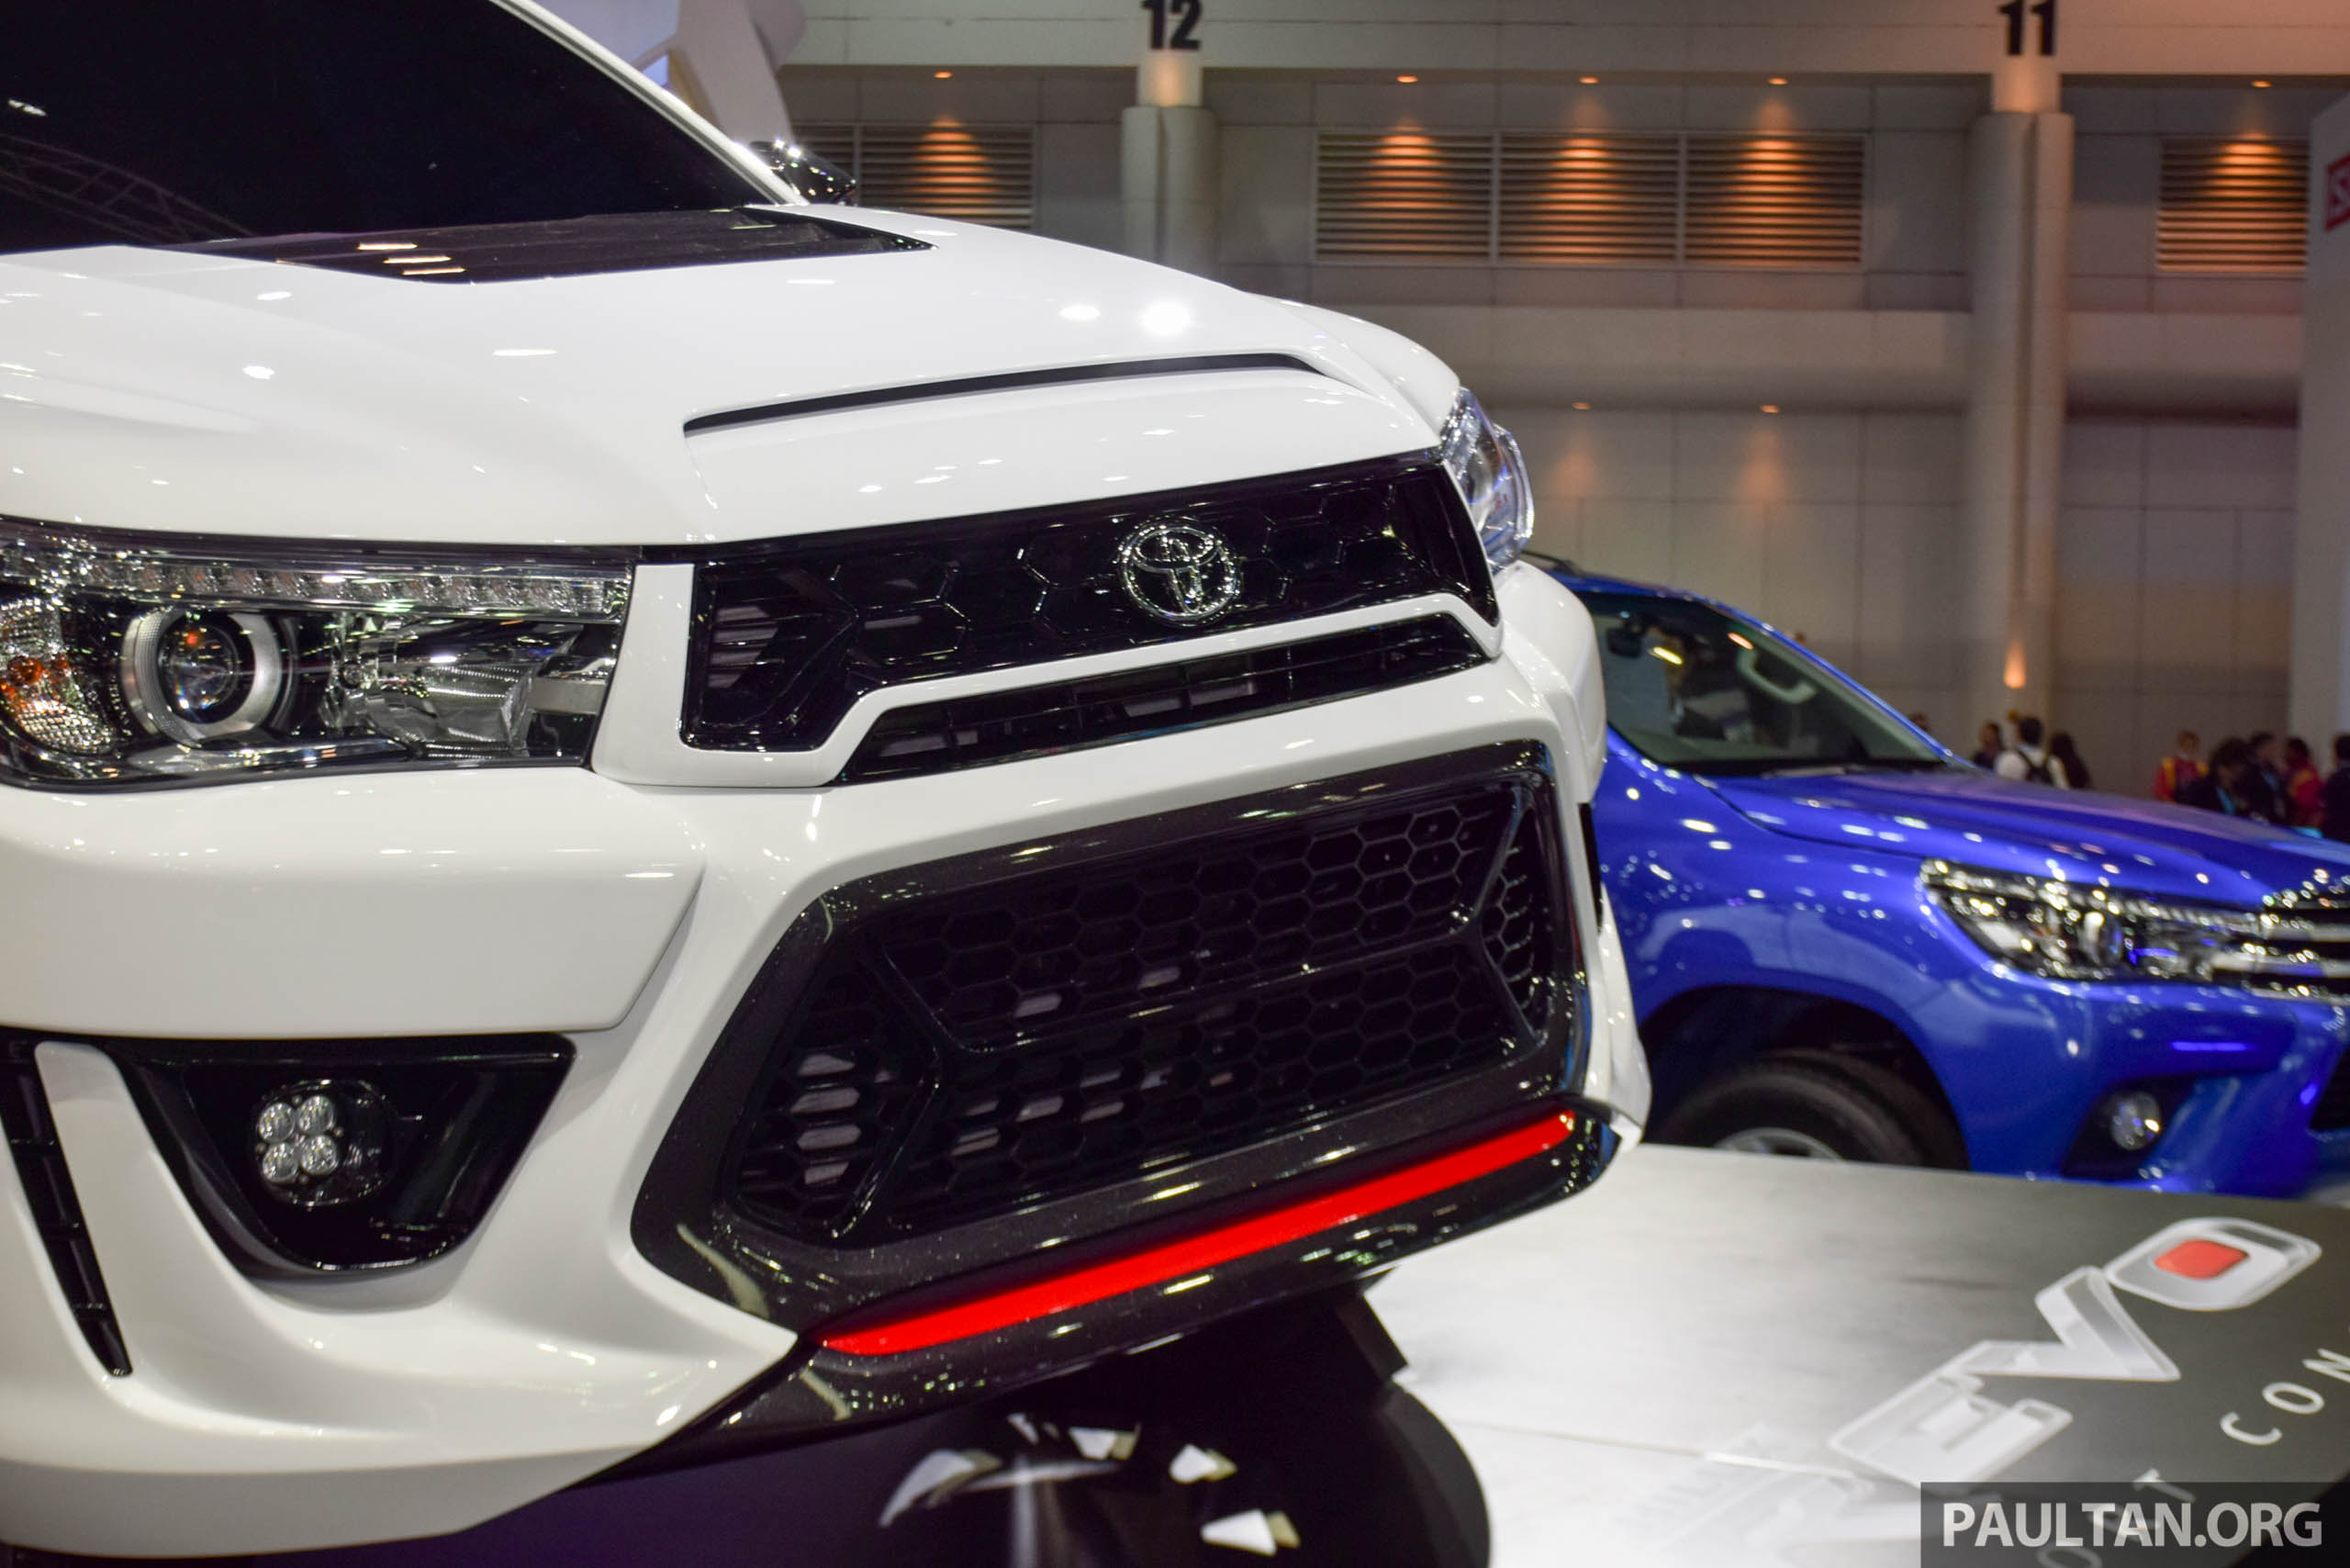 4 X 4 >> Toyota Hilux Revo Sport Concept unveiled in Bangkok Paul ...